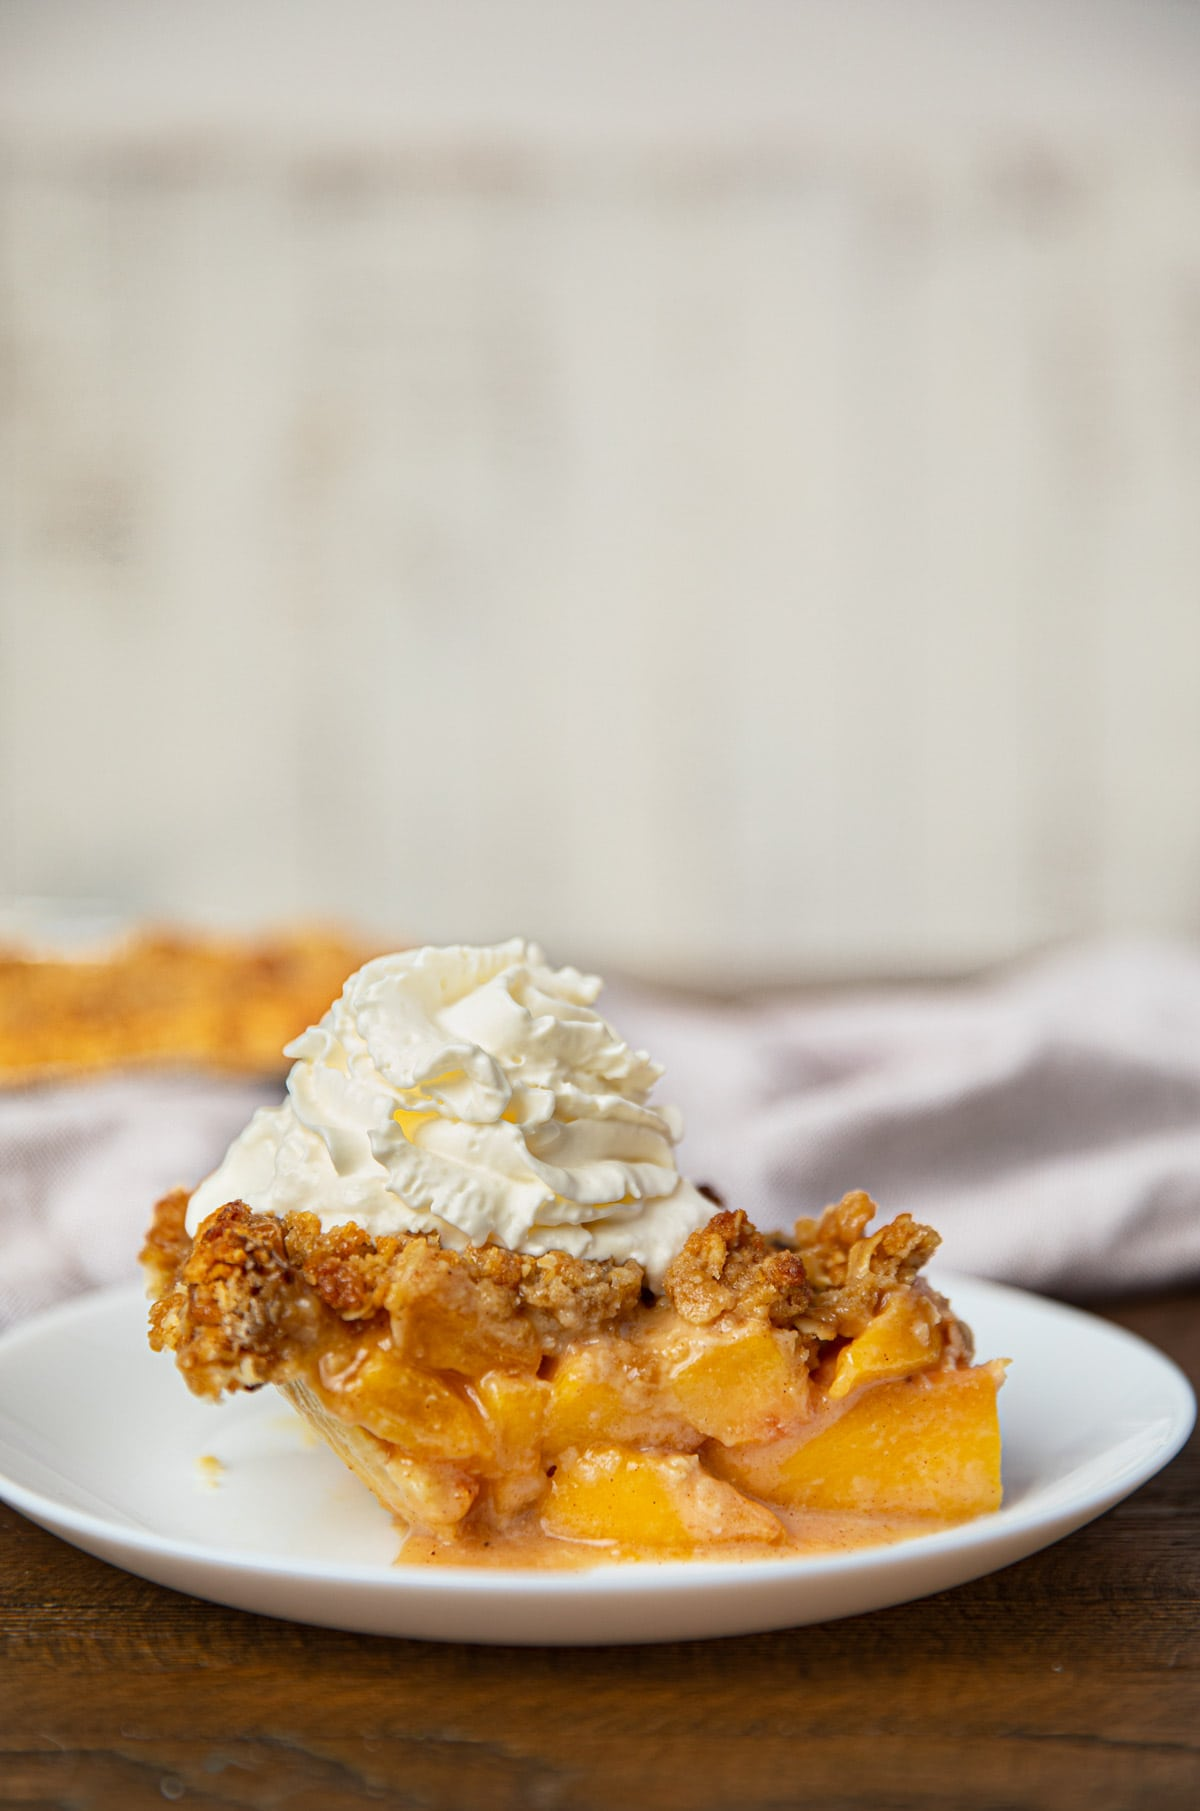 Slice of Peach Crumb Pie